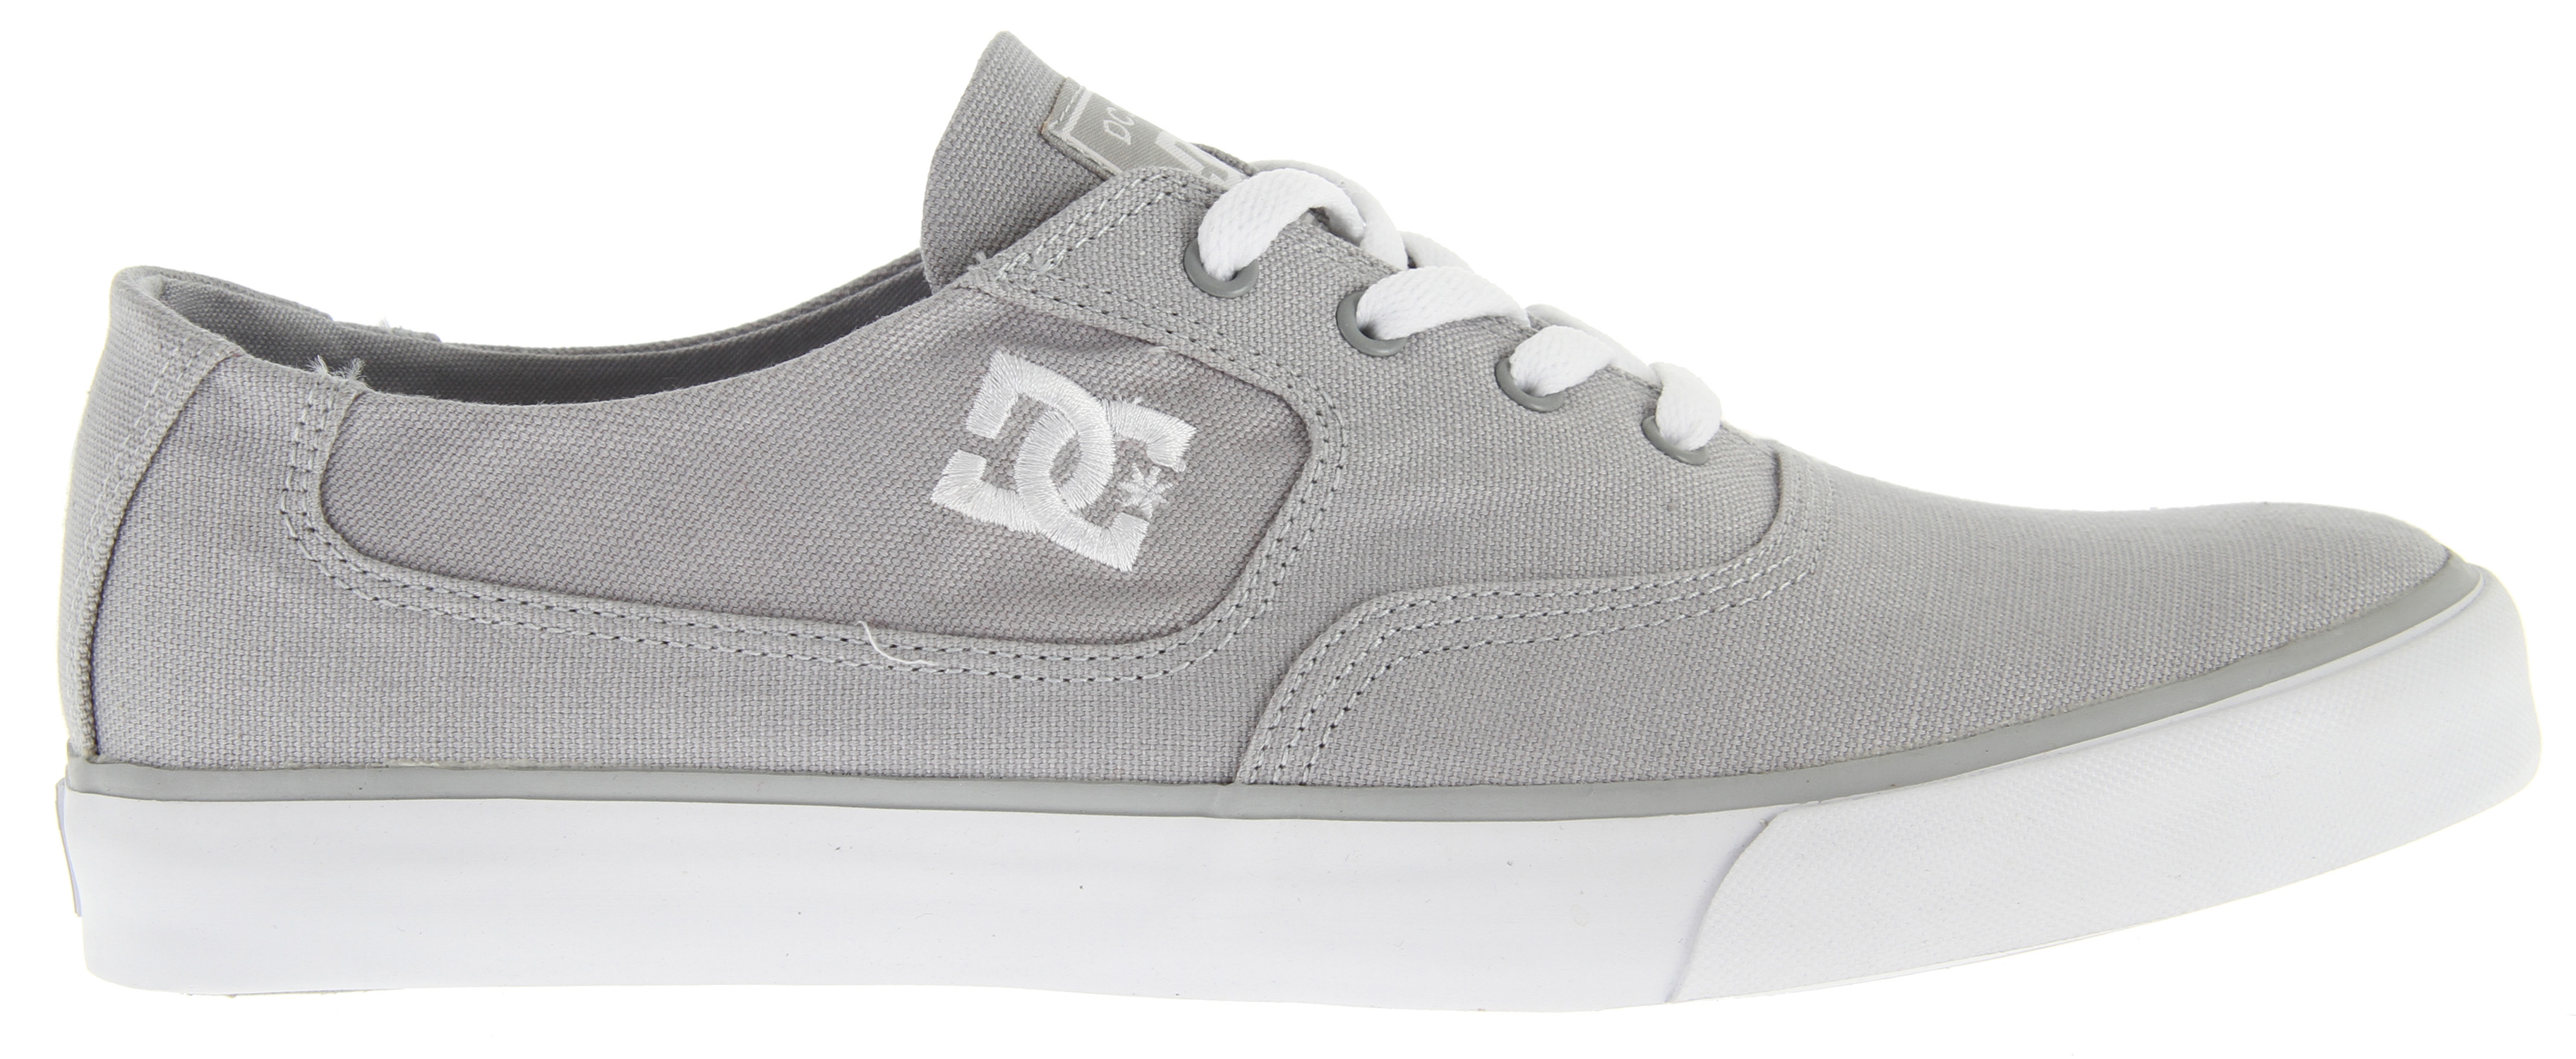 "Skateboard Key Features of the DC Flash TX Skate Shoes: Classic skateboarding style Suede and canvas upper TPU Eyelets DC's Performance Wrap Cup Sole Abrasion-Resistant Sticky Rubber Outsole DC's Trademarked ""Pill"" Pattern Embroidered DC logo Does not come in box - $28.95"